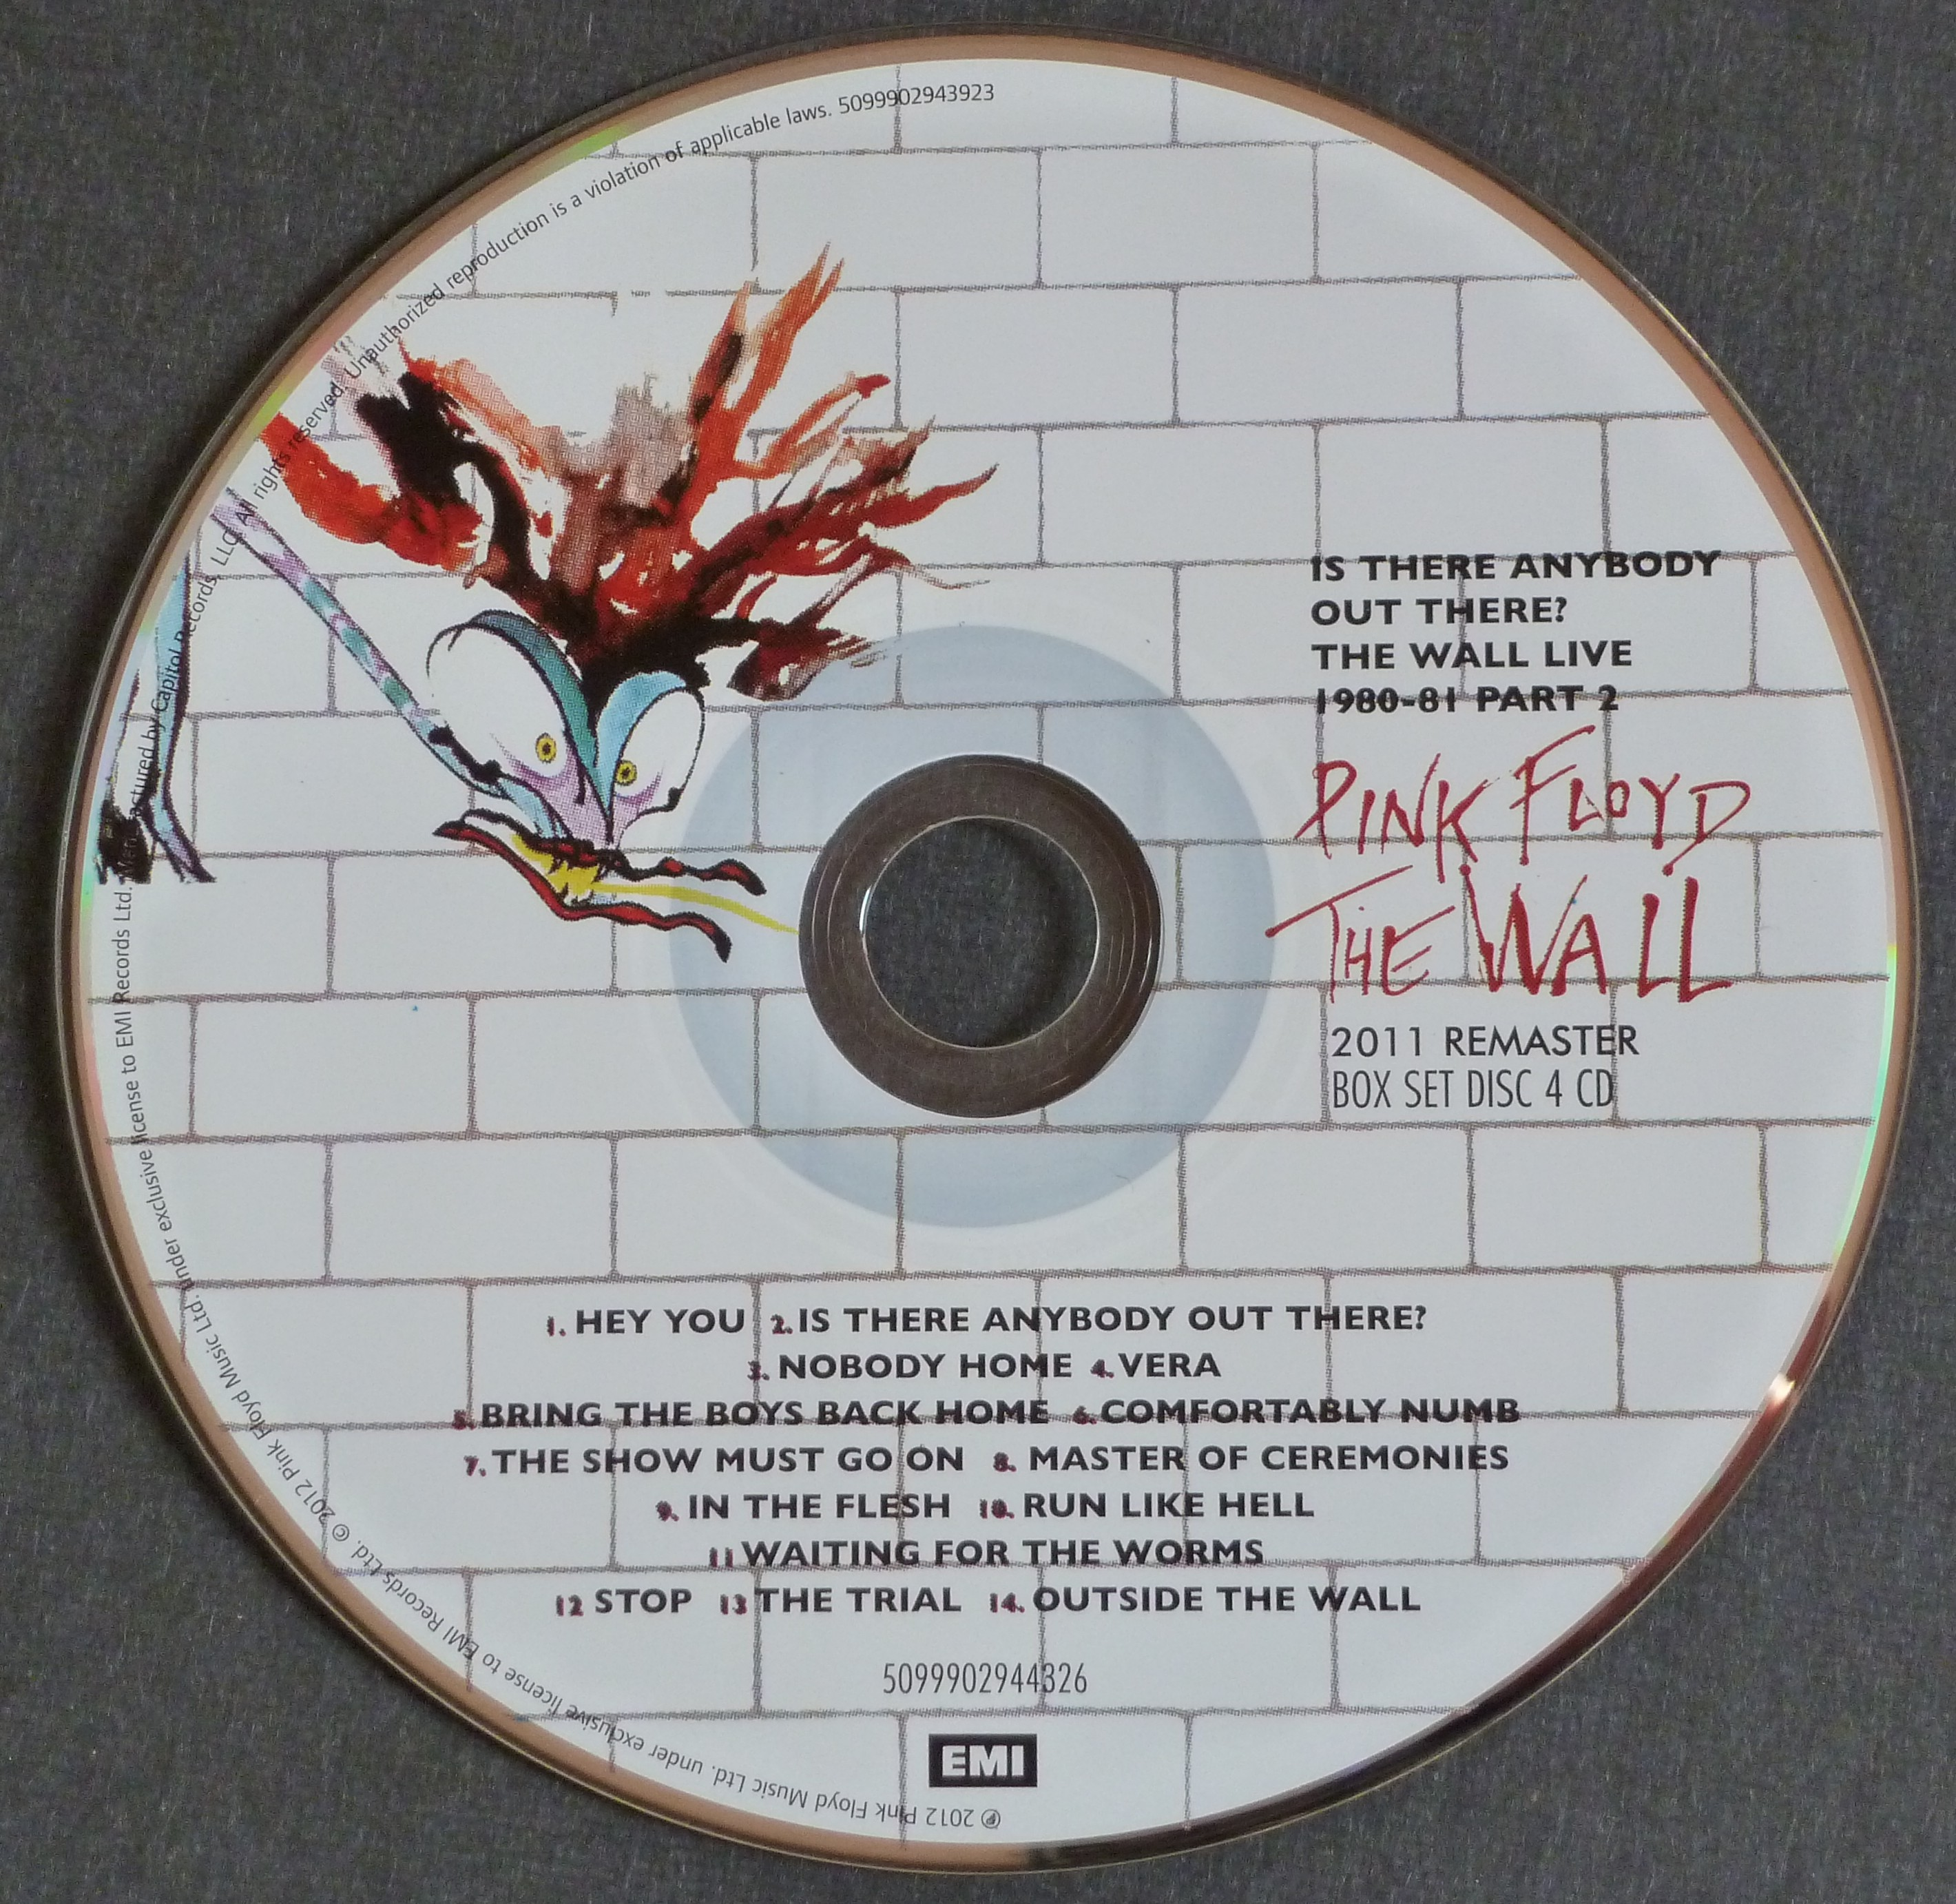 The Wall Pink Floyd: An In-depth Look At Pink Floyd's 'the Wall' Immersion Box